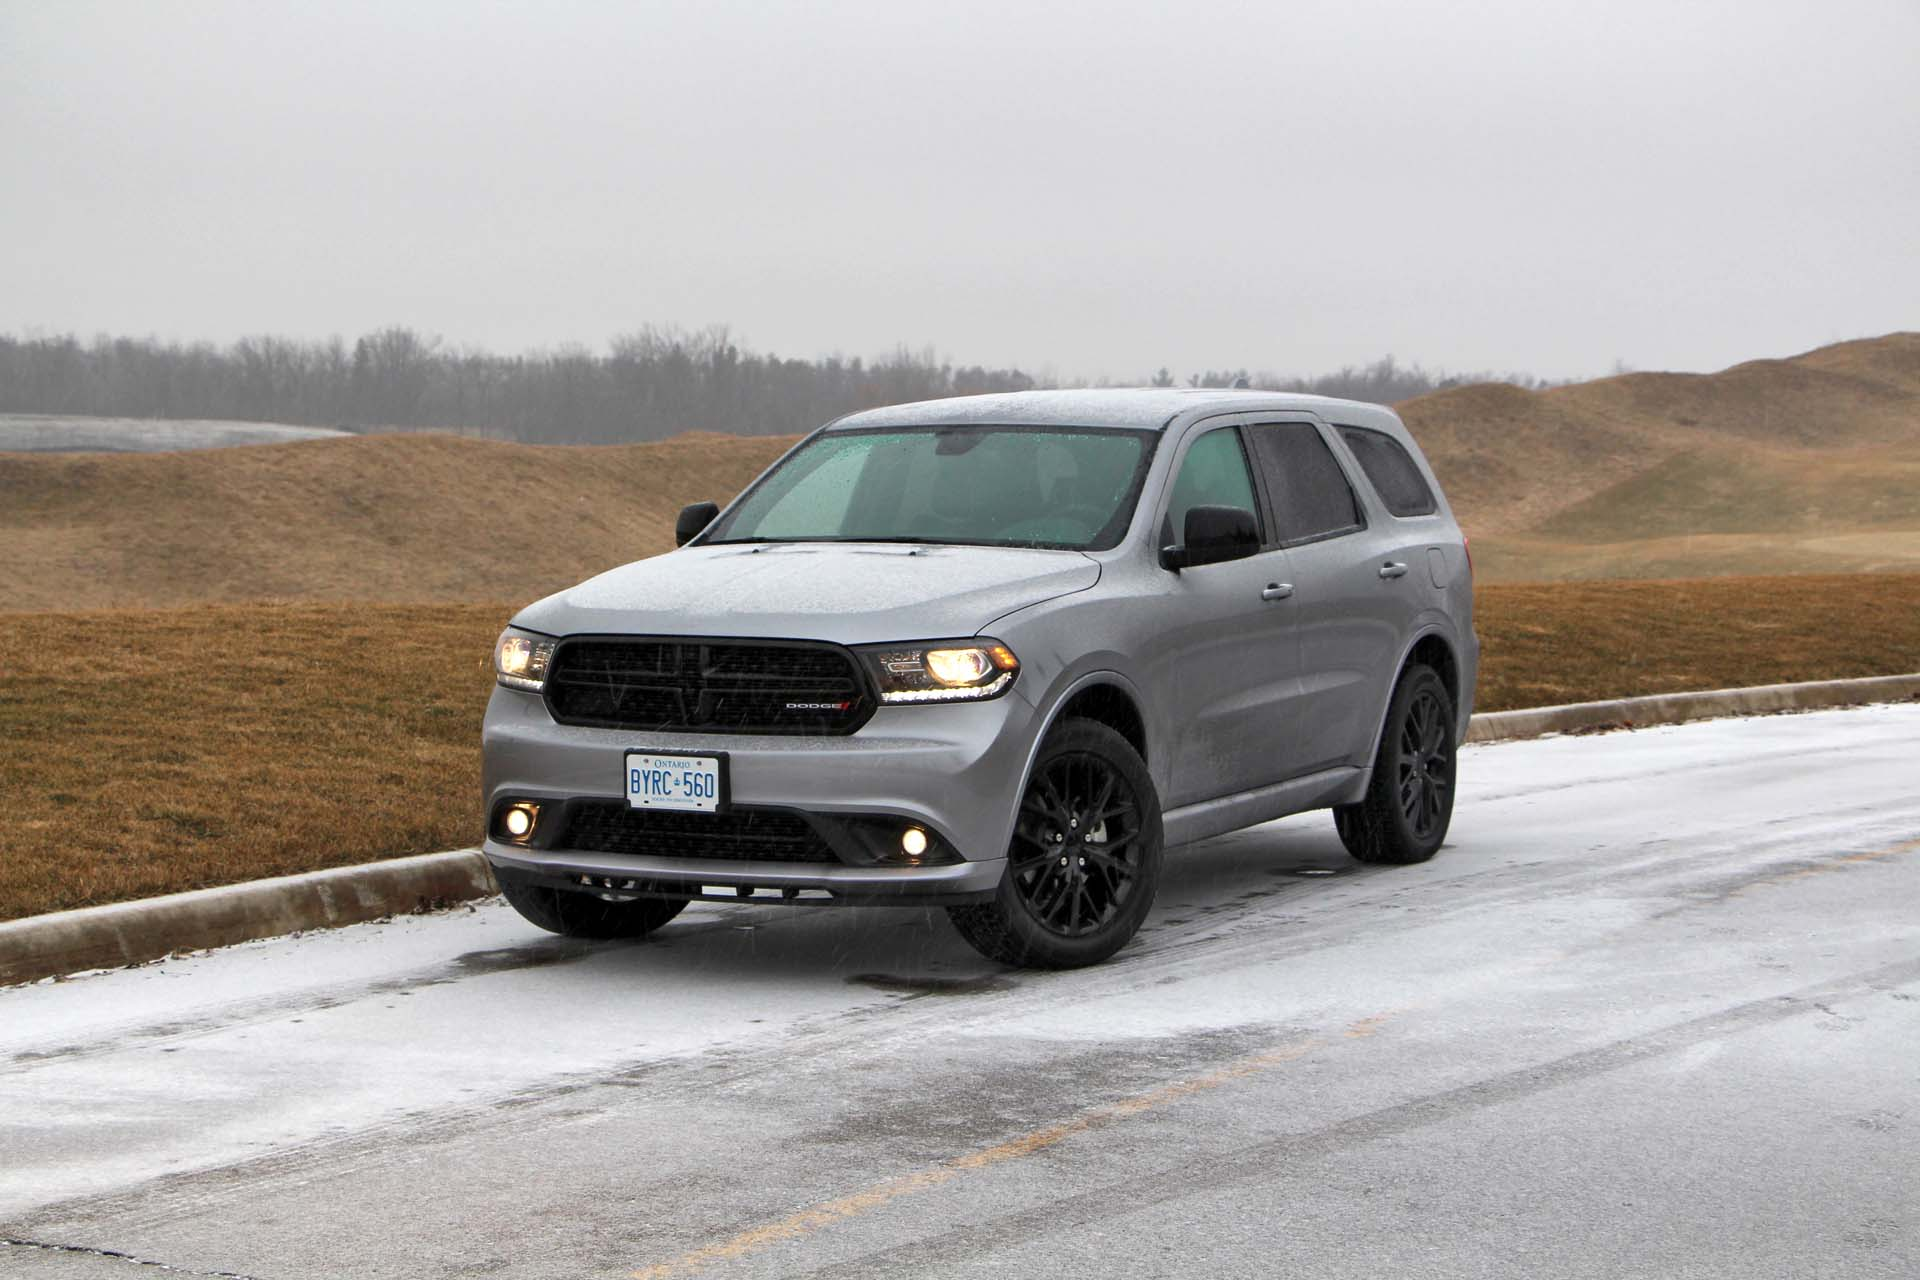 2016 Dodge Durango - Autos.ca